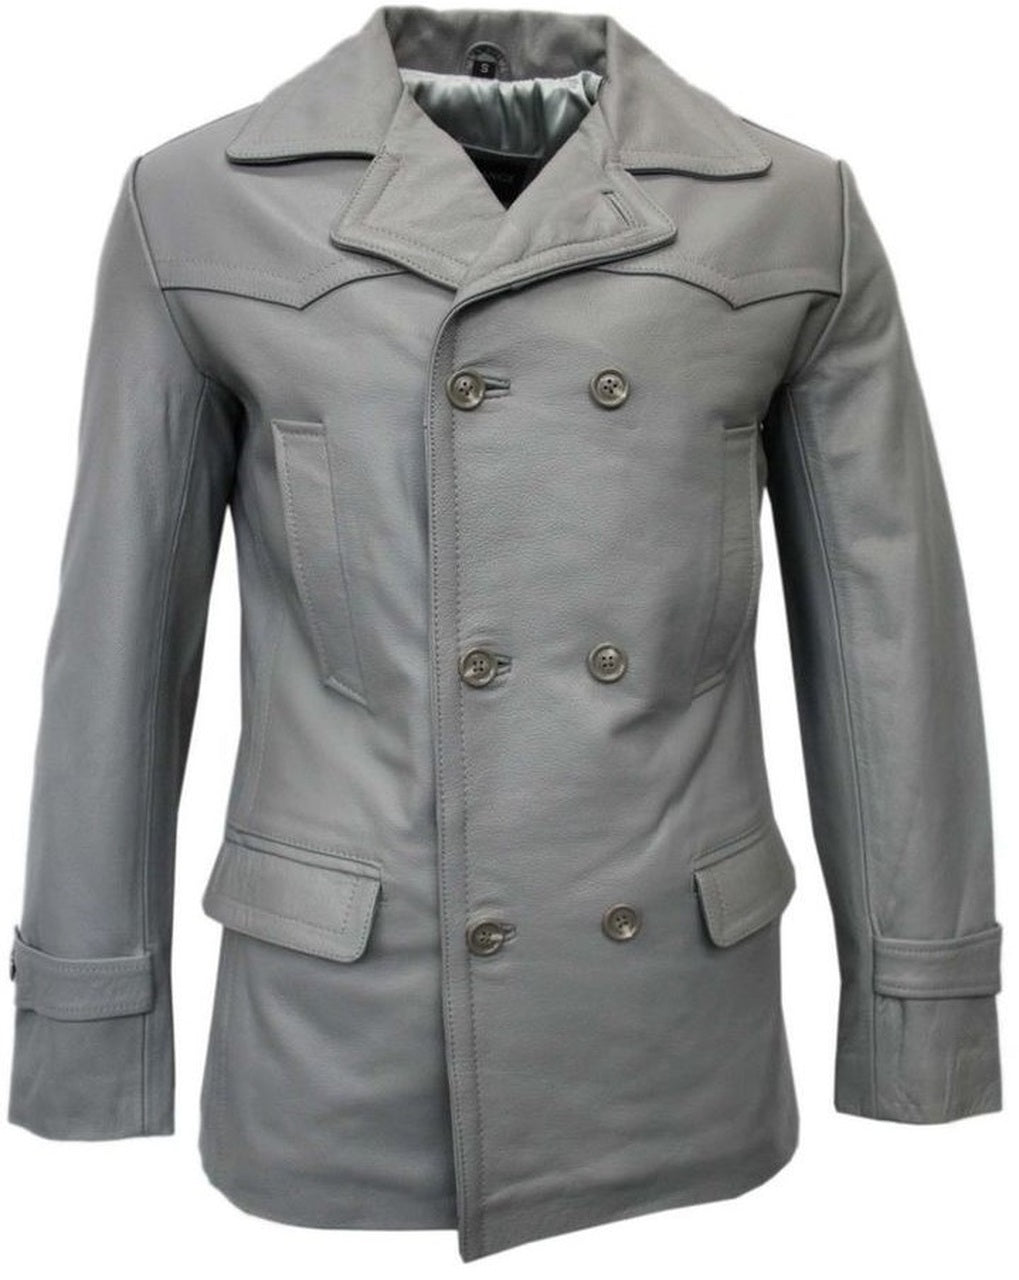 Submarine World War 2 German Grey Three Qaurter Leather Pea Coat Blazer